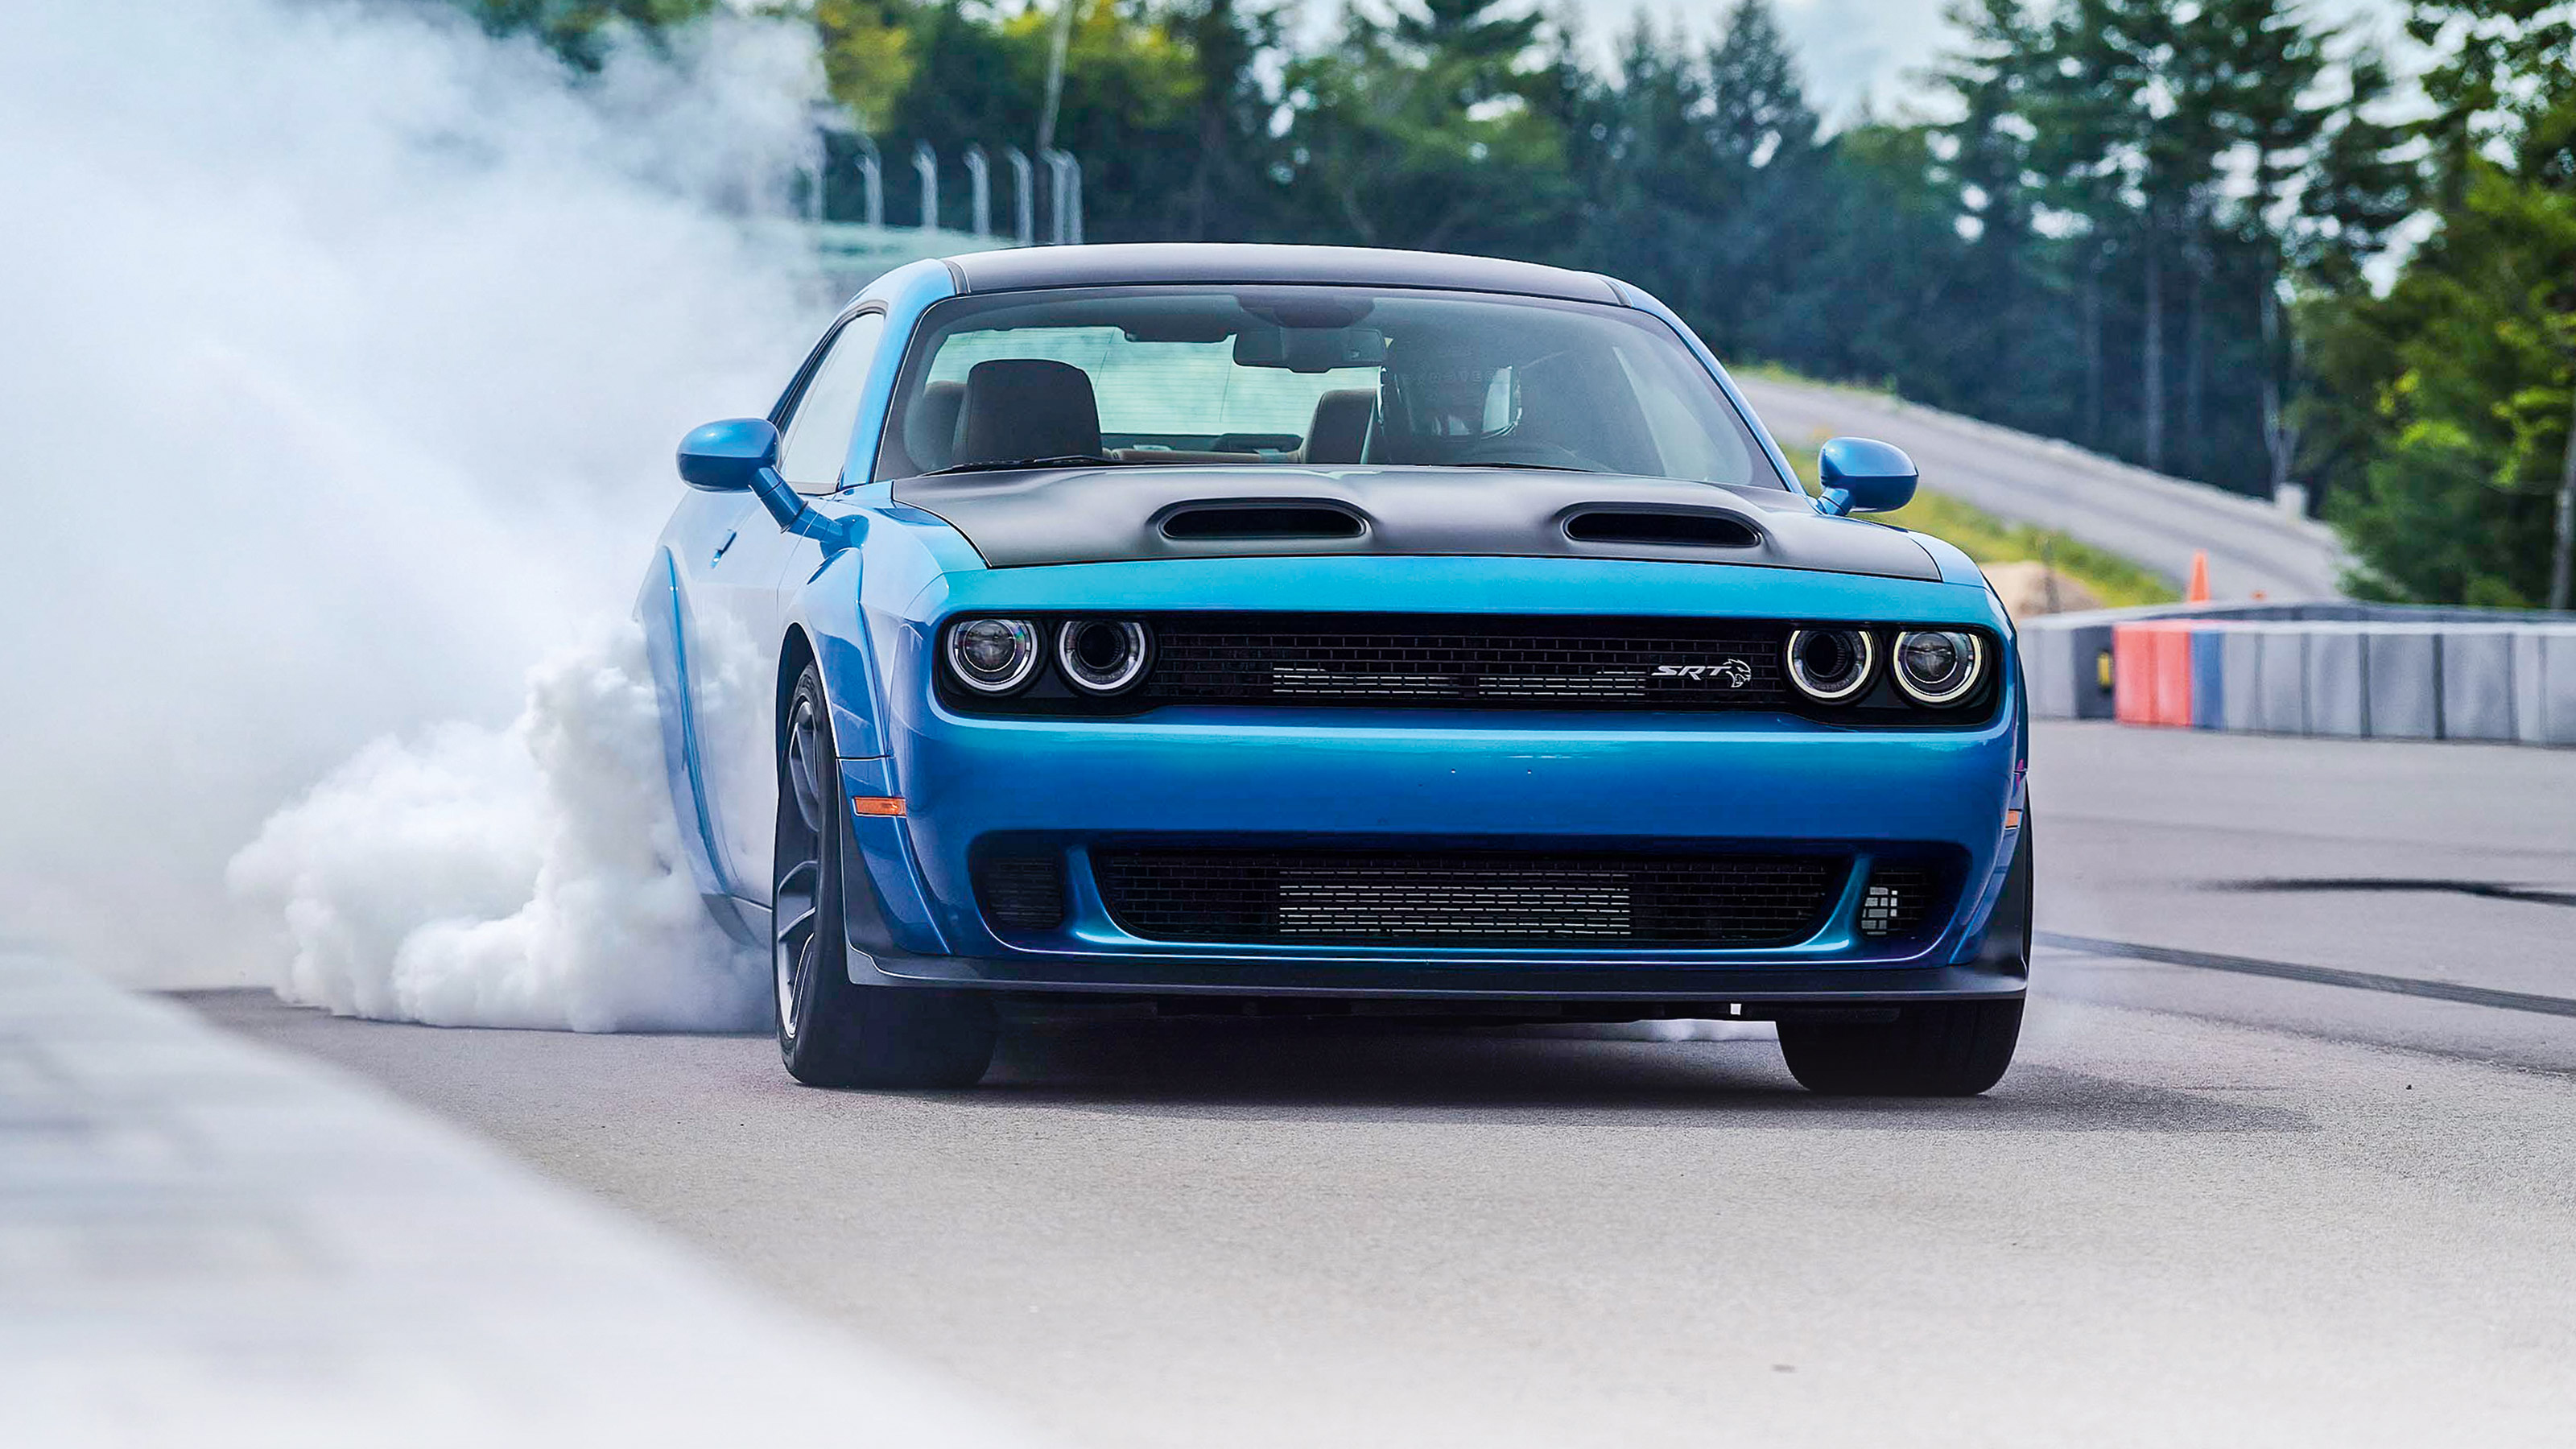 Dodge Challenger Srt Hellcat Redeye Review Evo